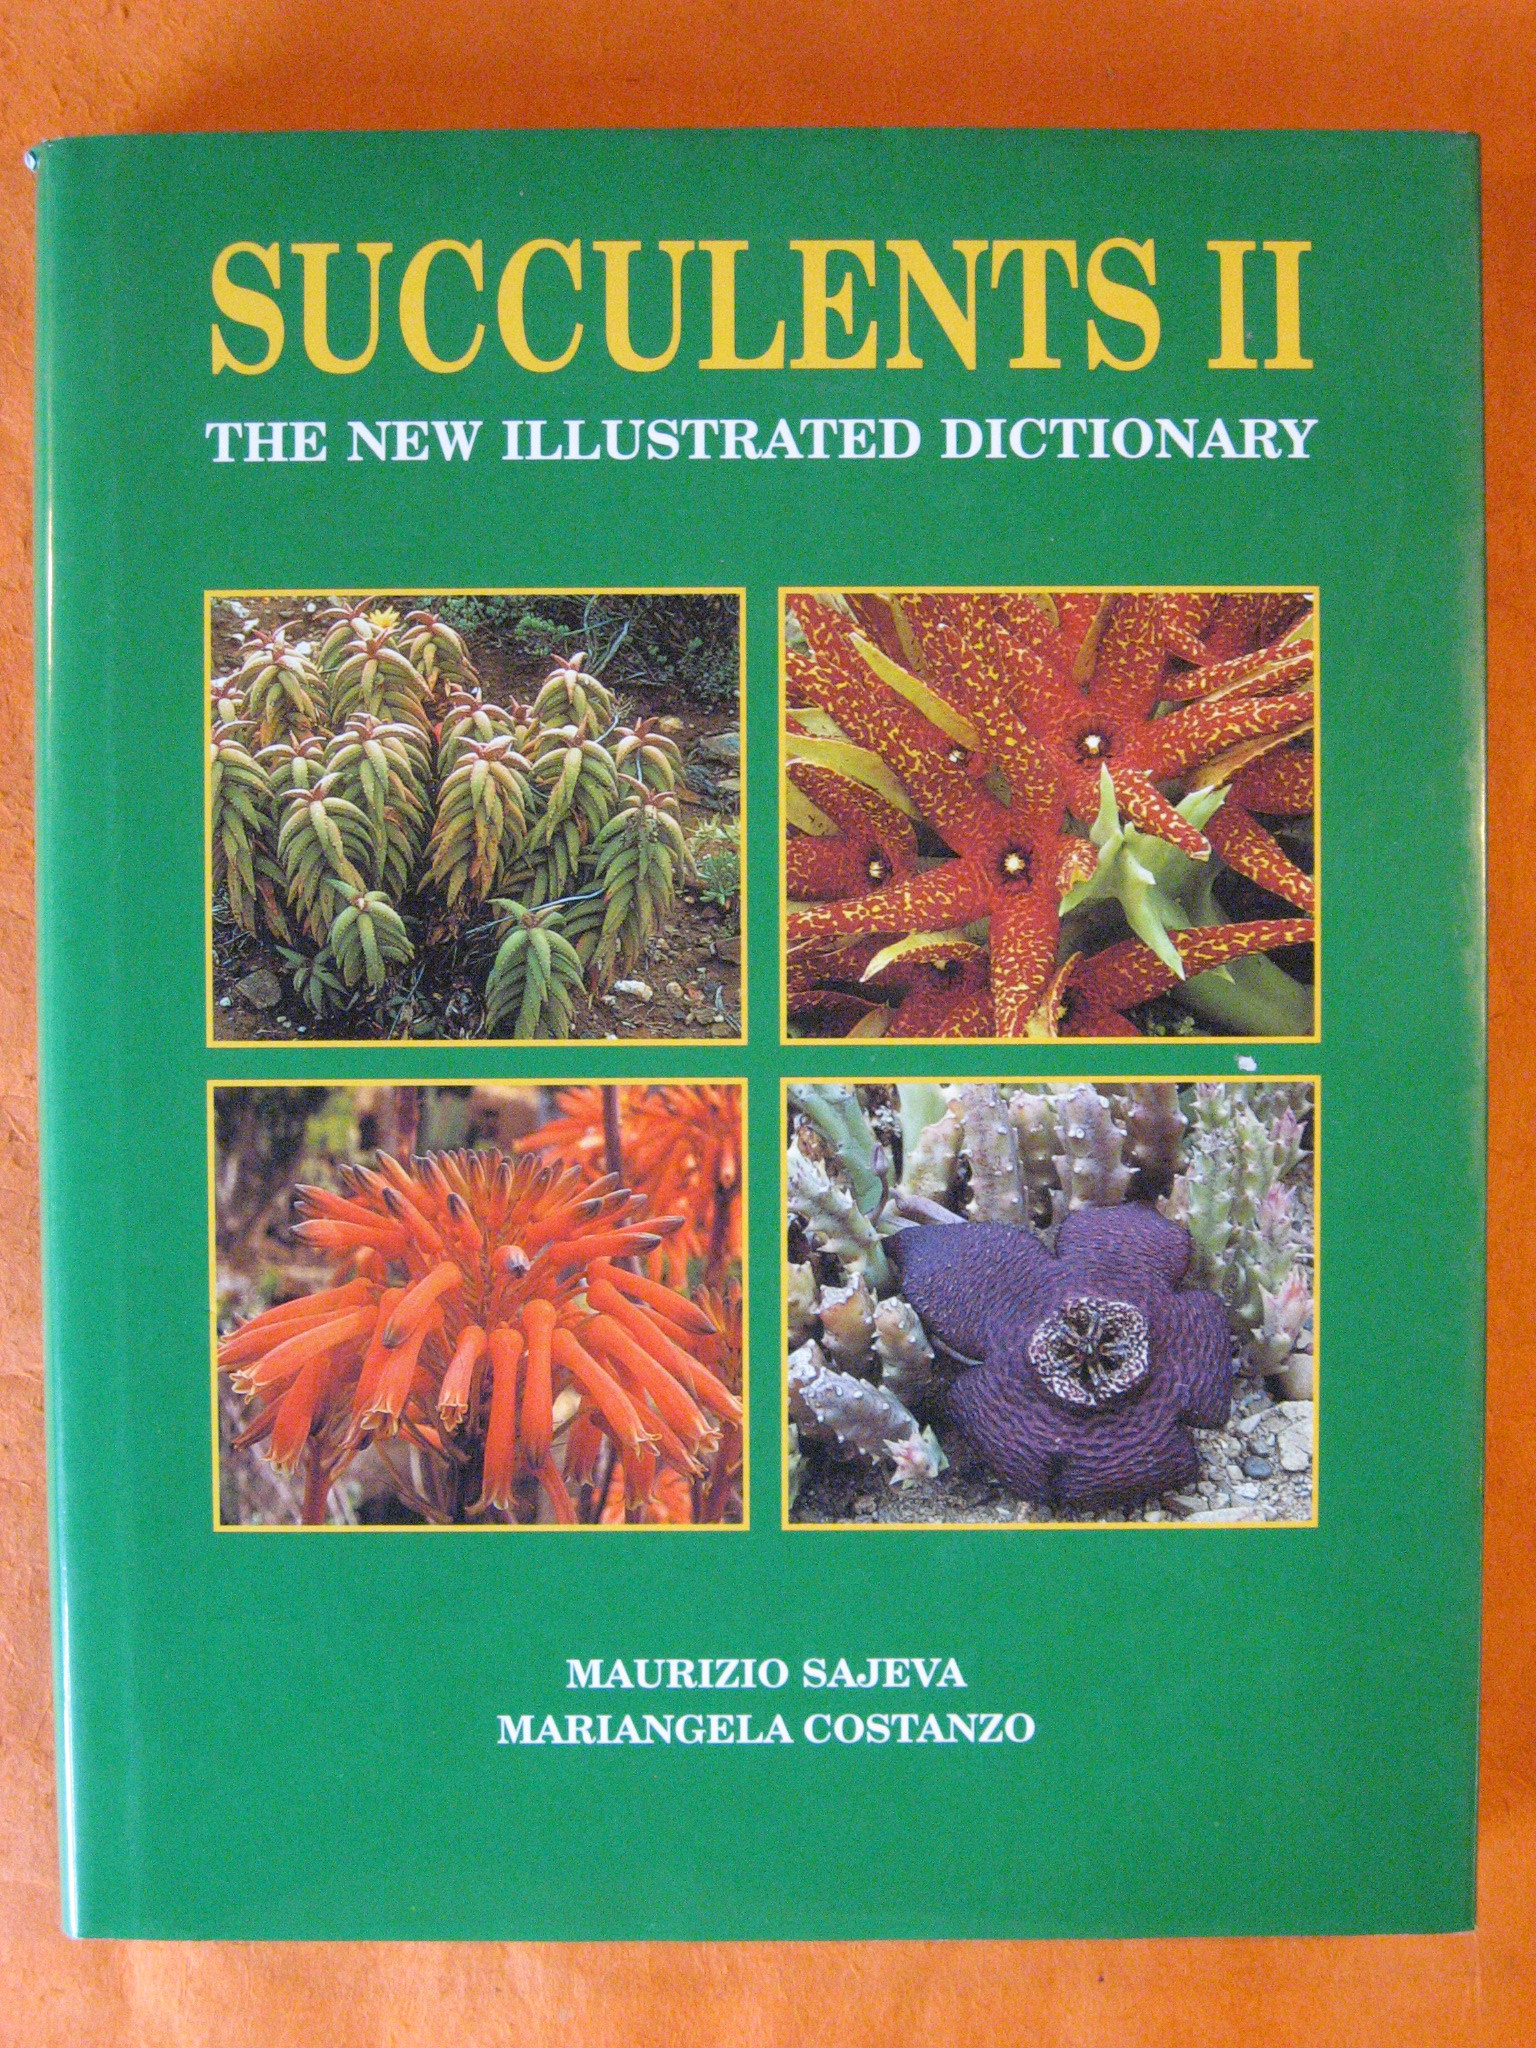 Succulents II: The New Illustrated Dictionary, Sajeva, Maurizio; Costanzo, Mariangela